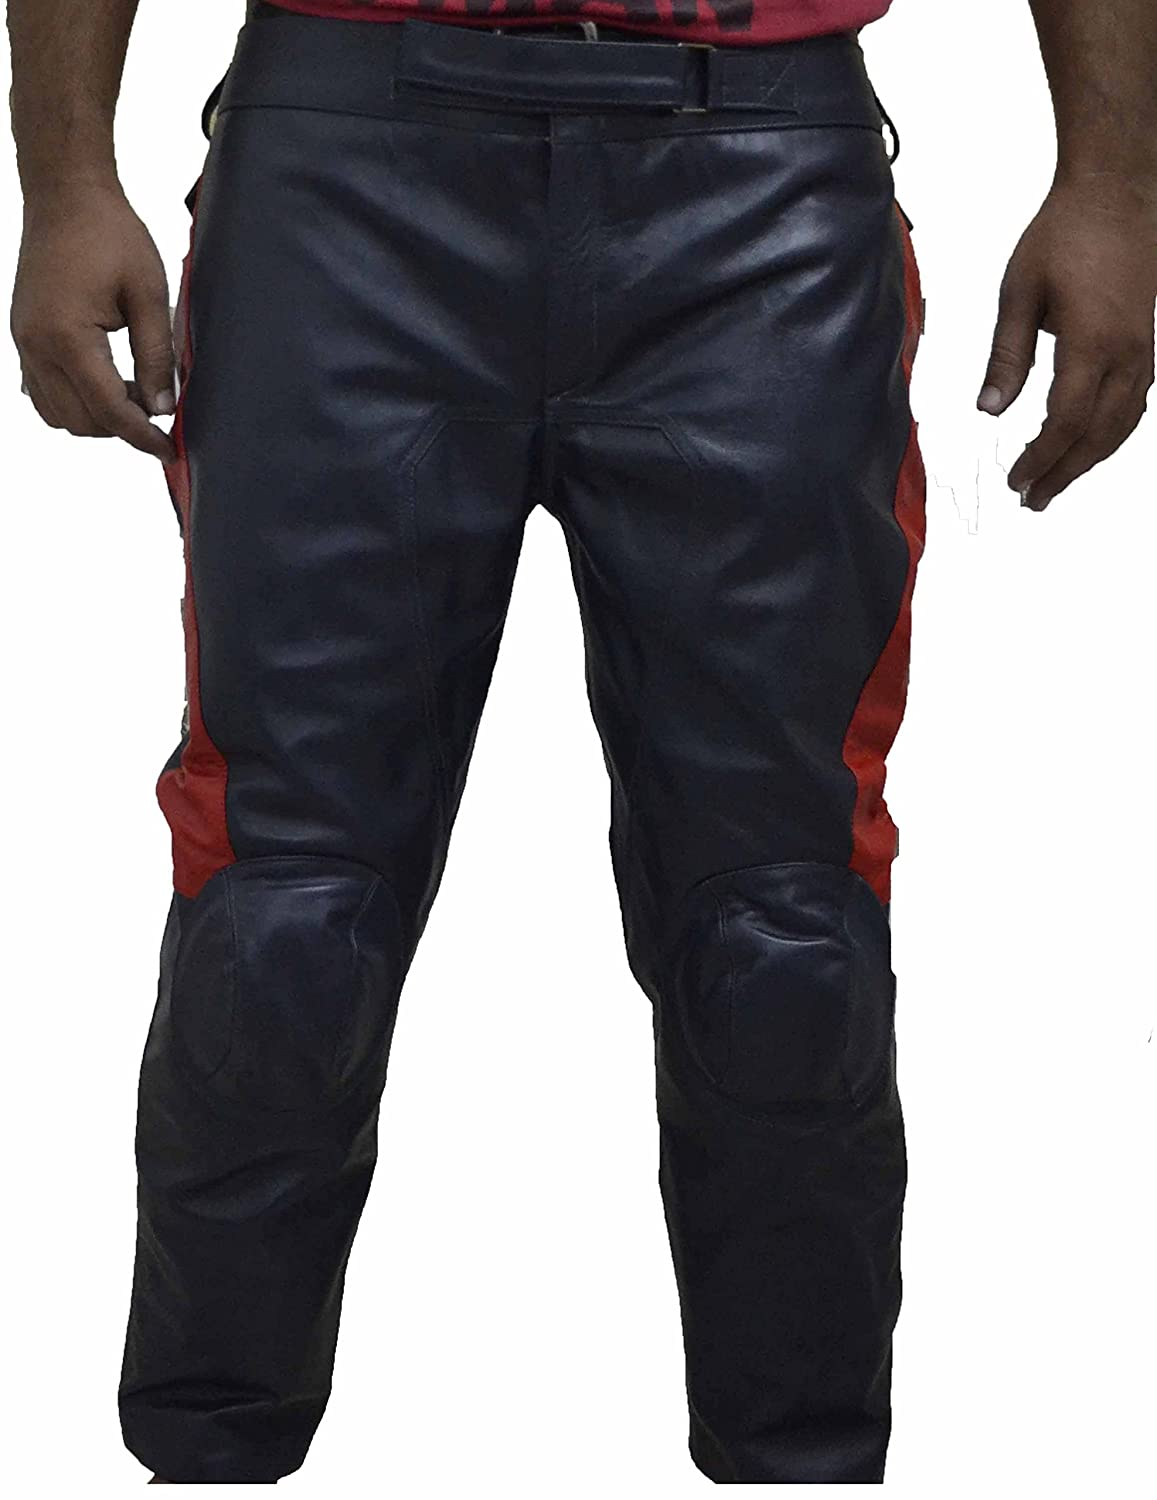 Men's Captain America Avengers Cow Hide Leather Pants - DeluxeAdultCostumes.com